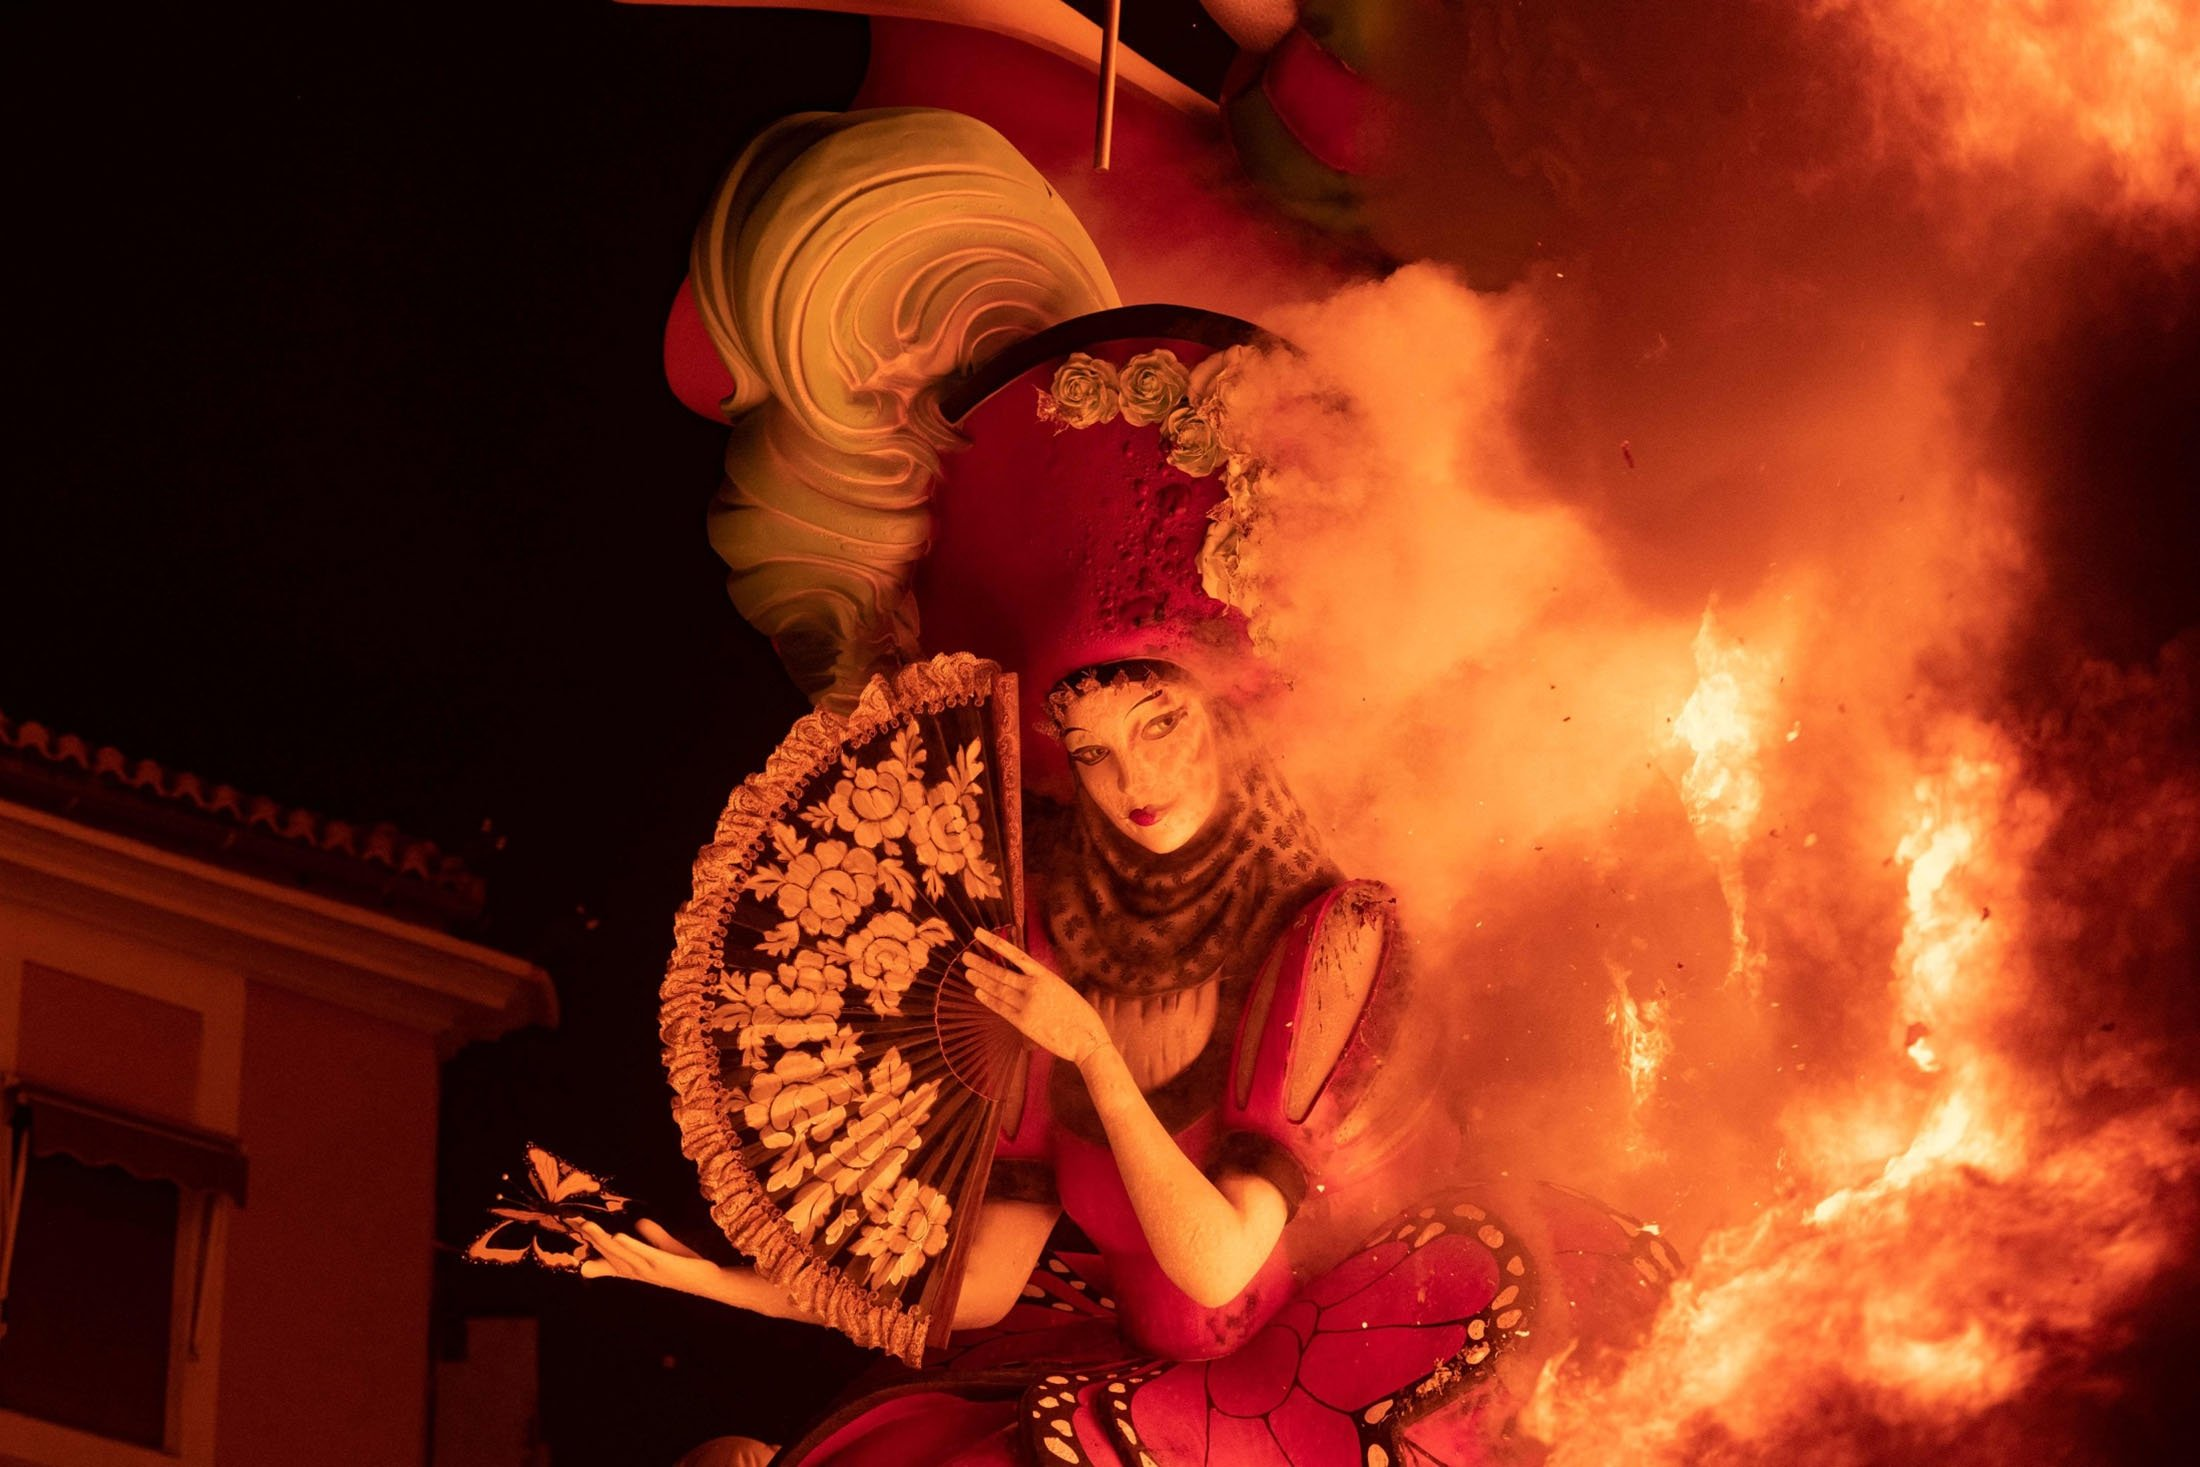 A ninot burns as an installation of the Fallas festival is set on fire during the last night of the festival in Valencia, Spain, Sept. 5, 2021. (AFP Photo)